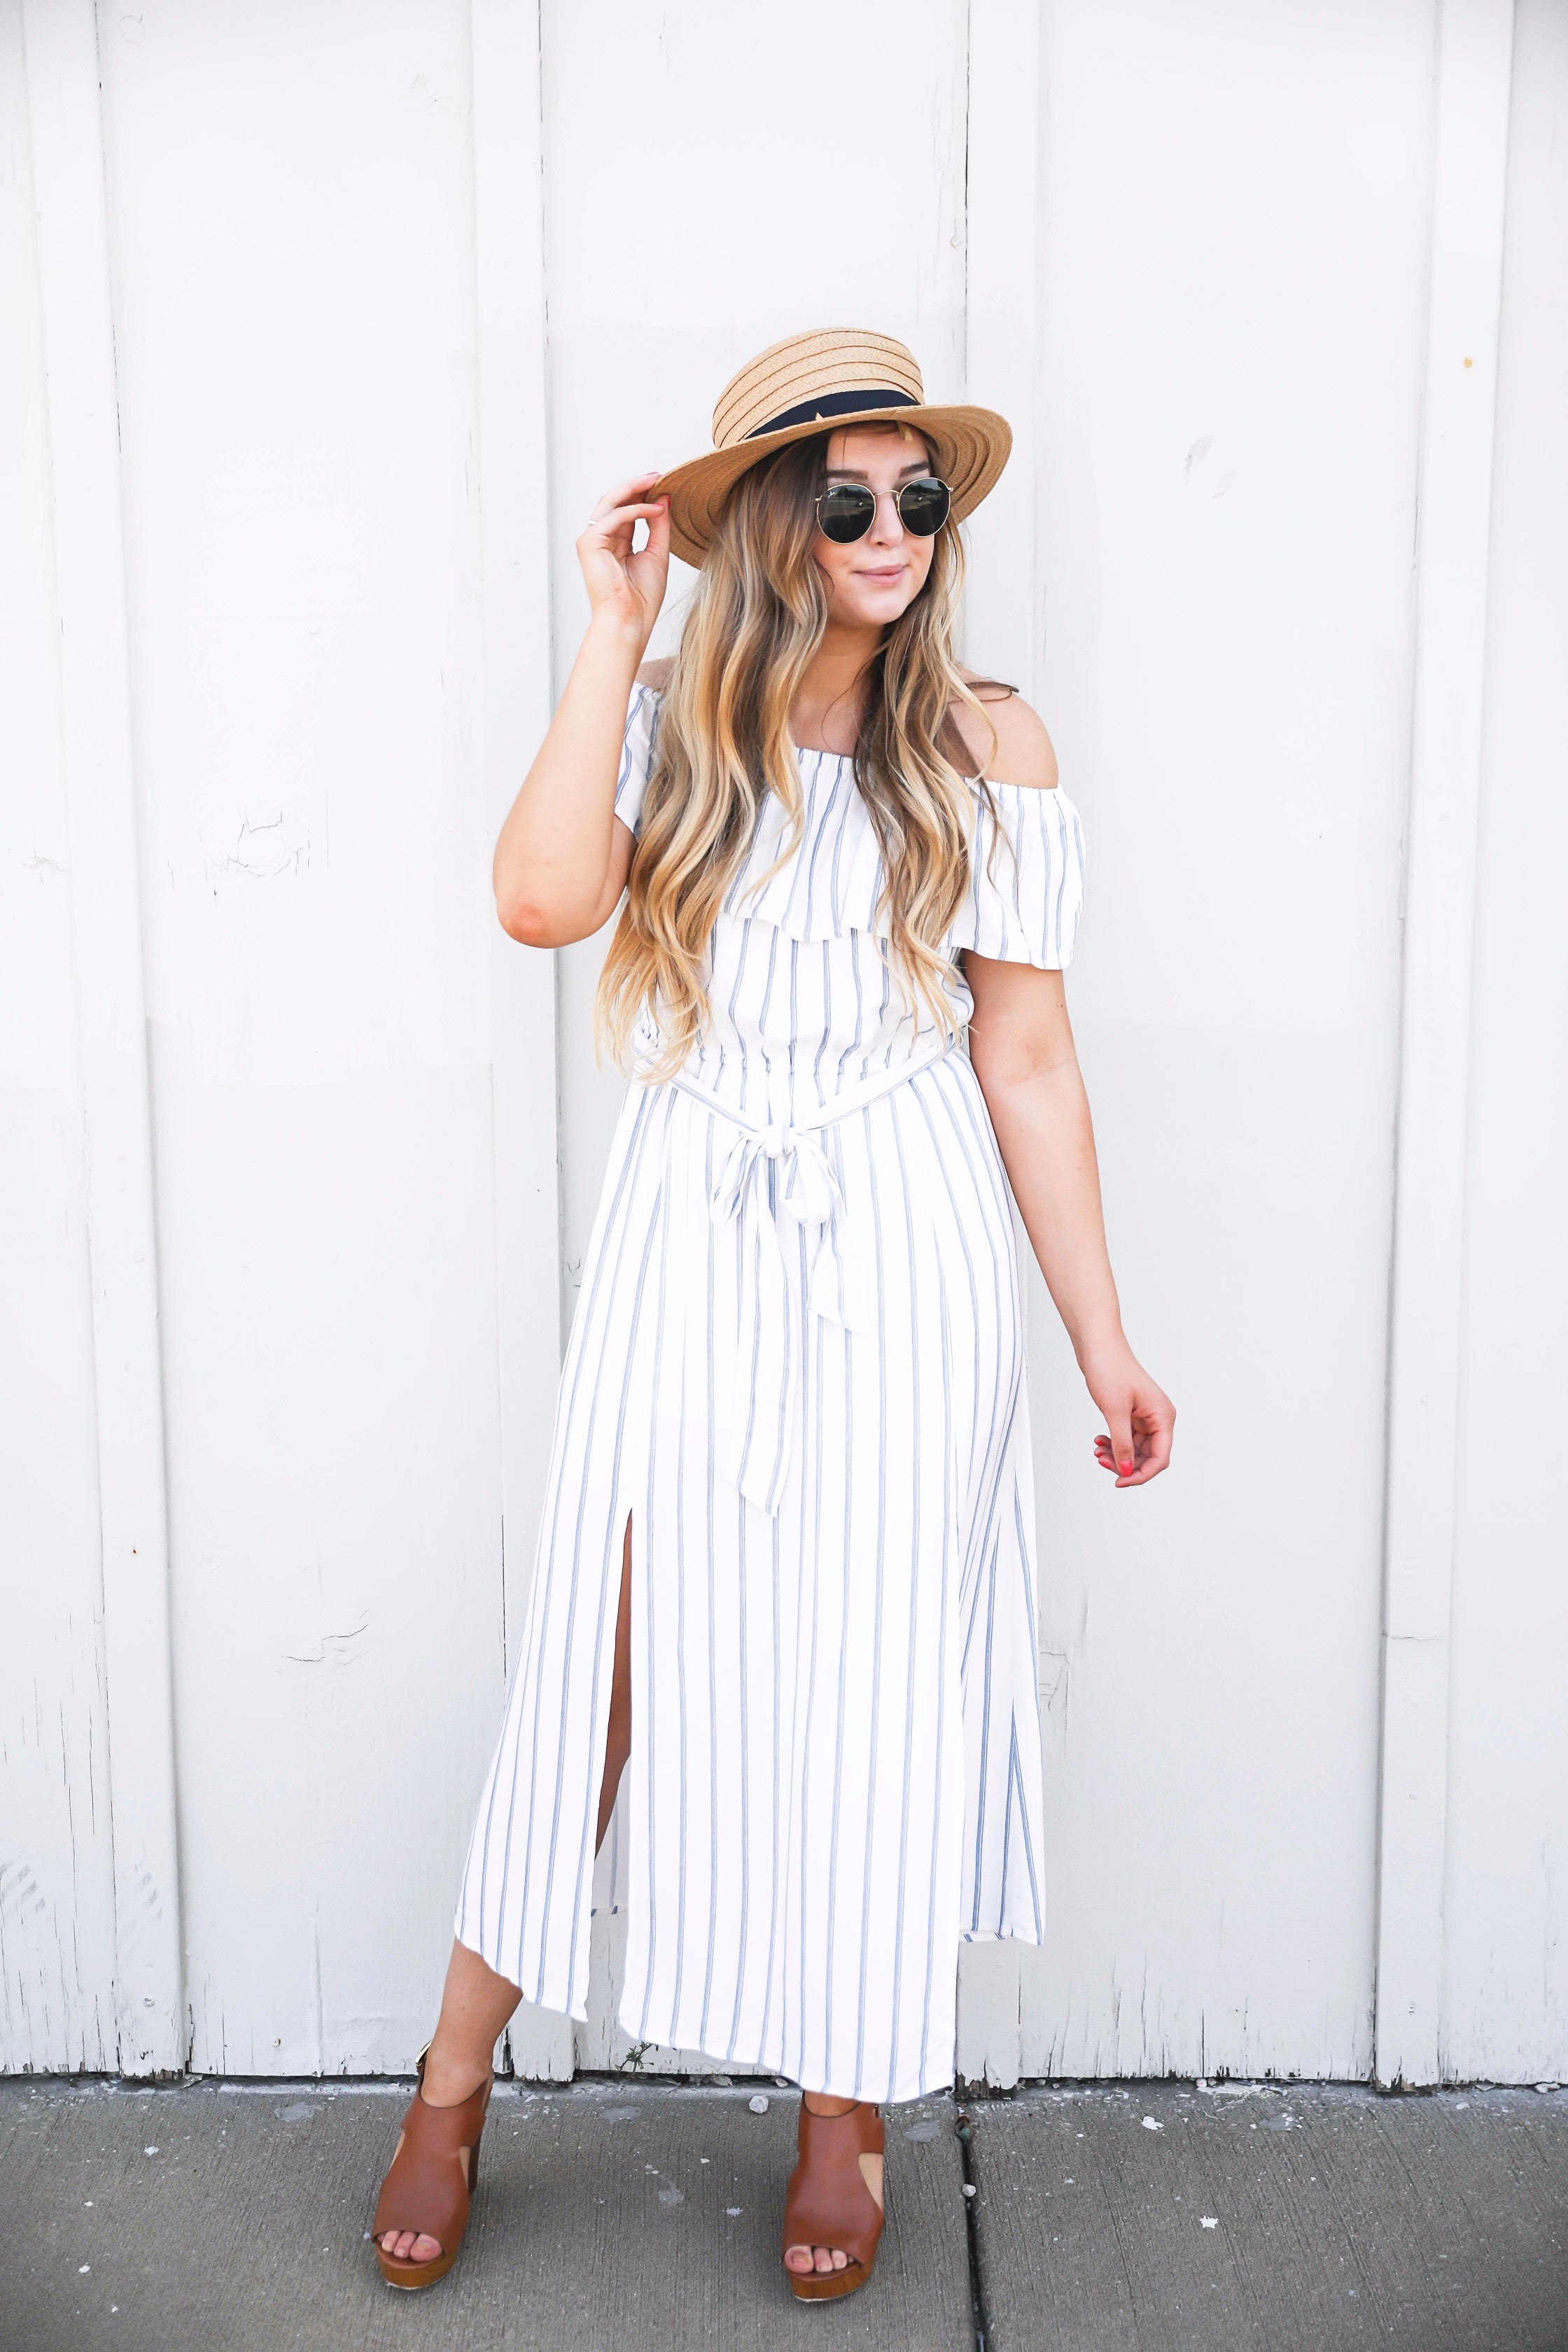 Navy and white striped off the shoulder boardwalk dress! I paired it with a cute boat hat and clubmasters! By fashion blogger daily dose of charm lauren lindmark